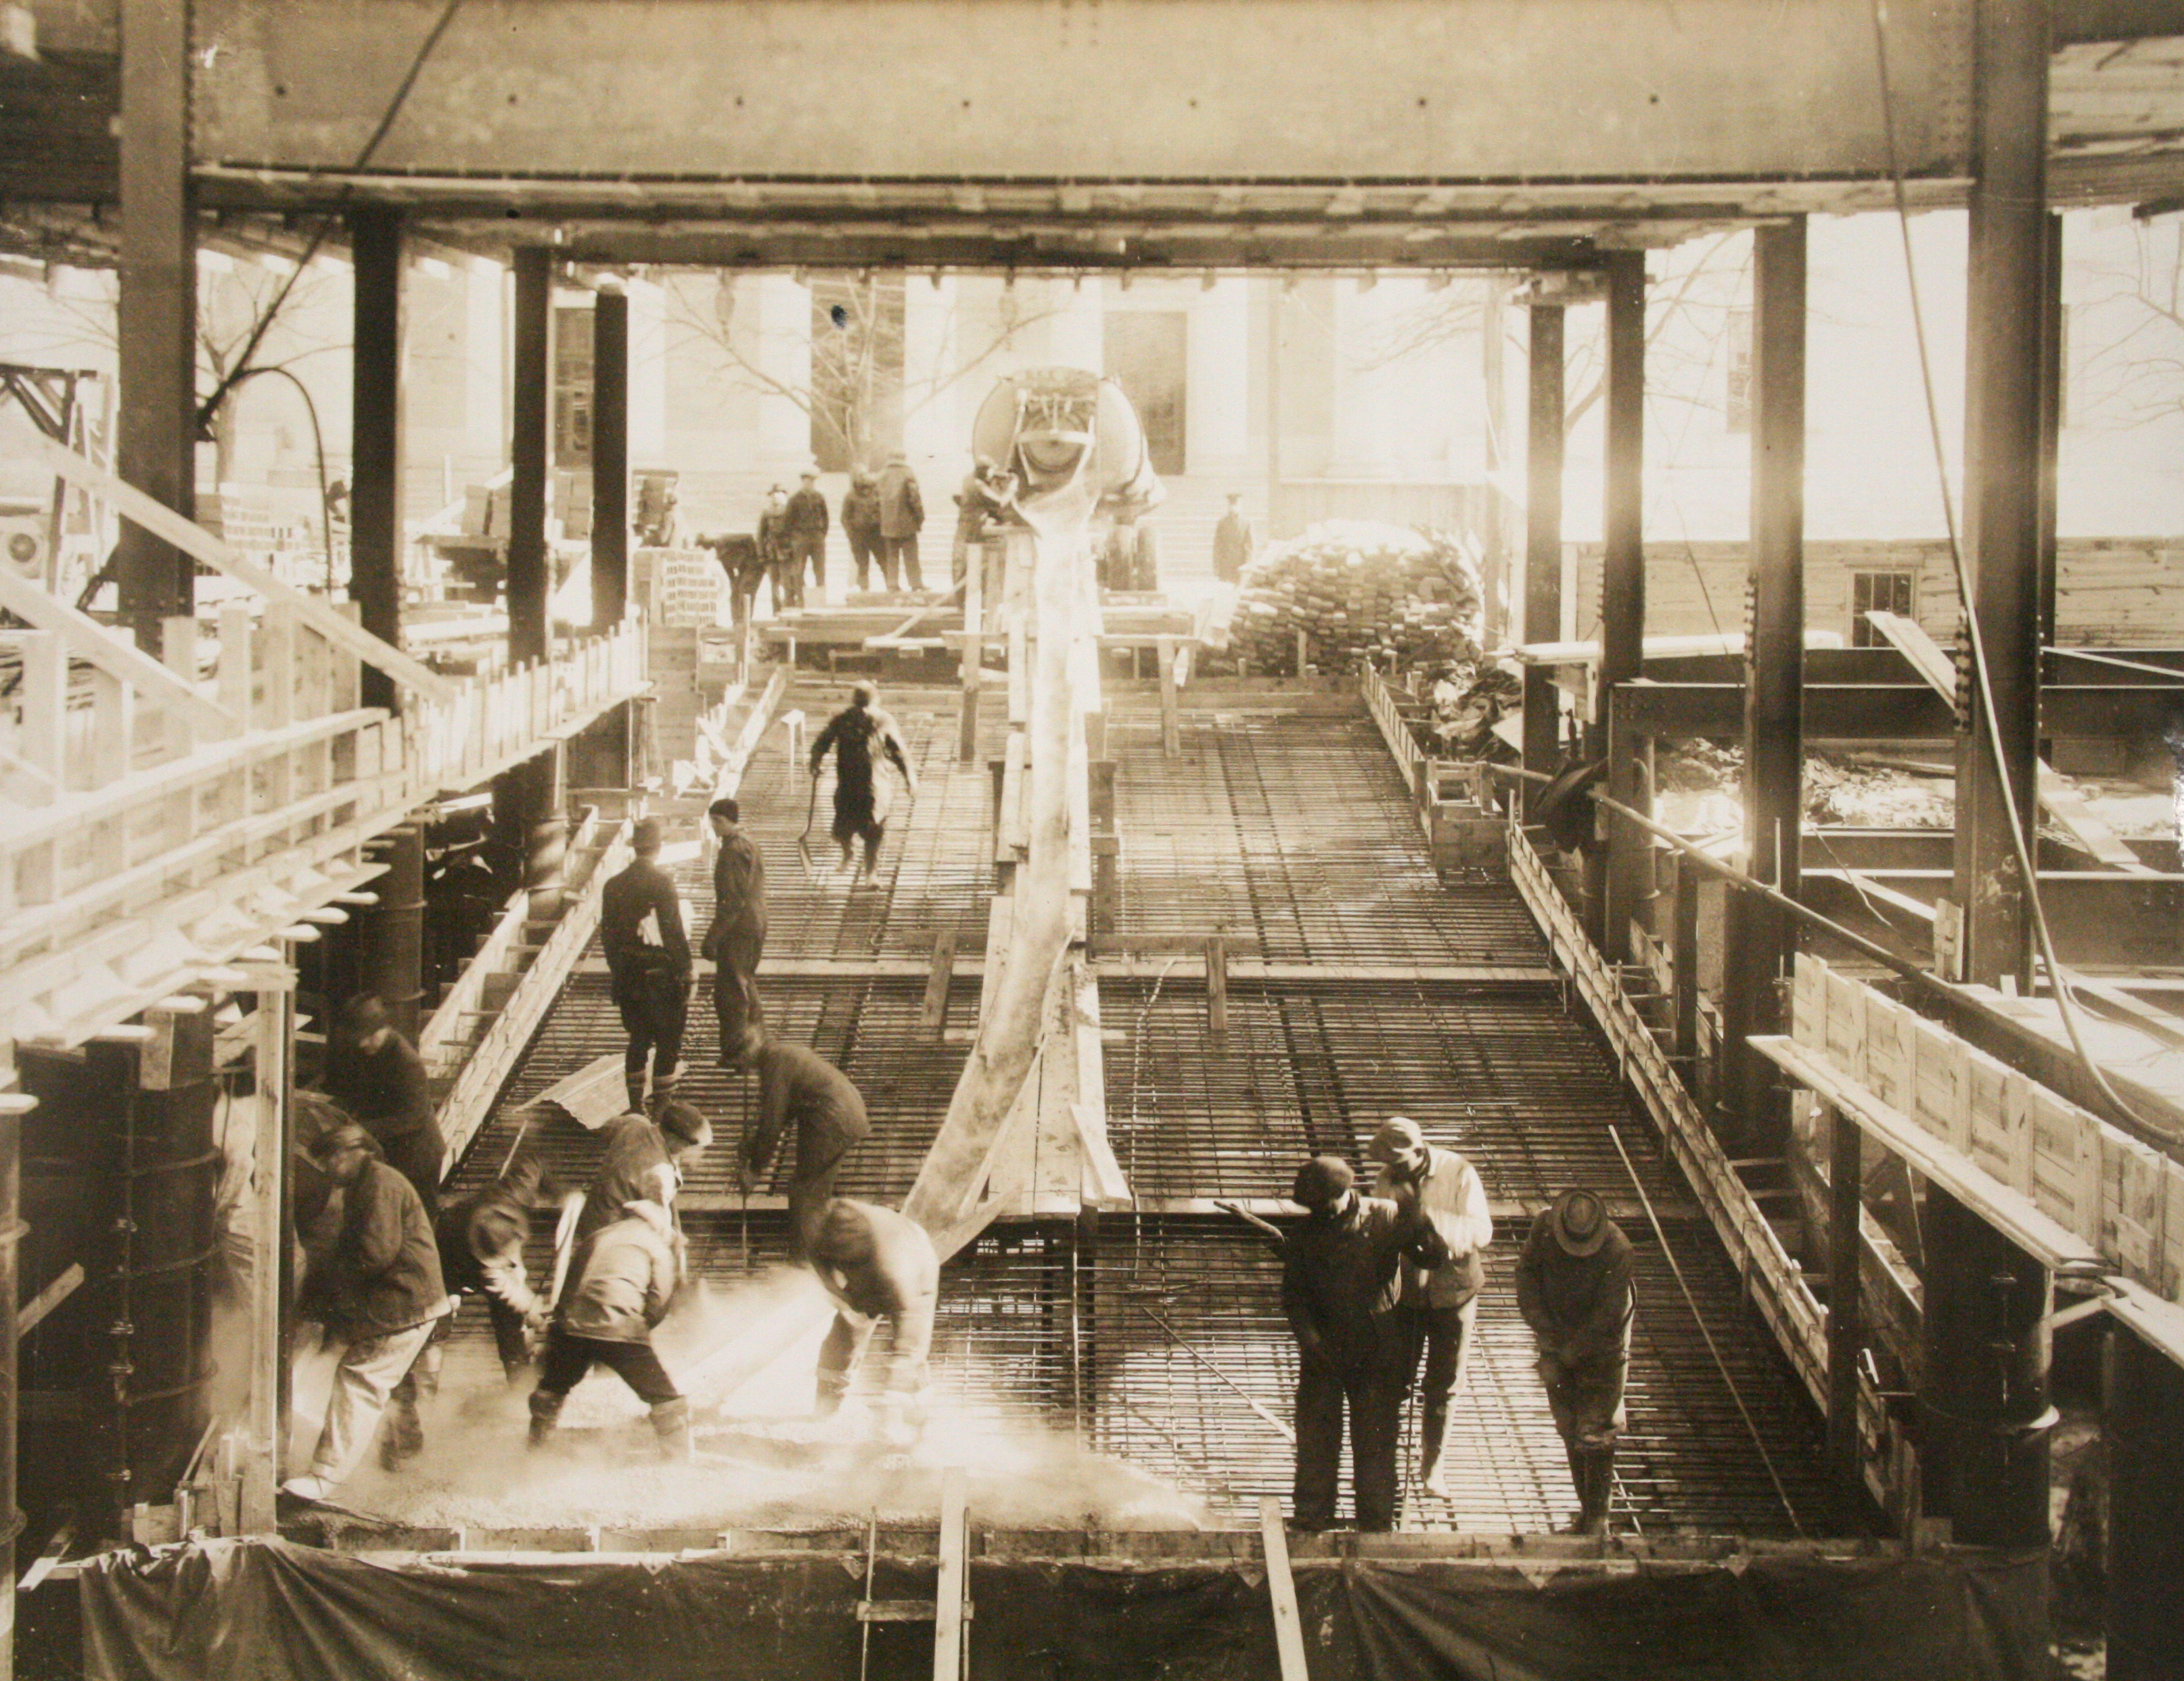 Workers pouring concrete during construction, C. 1935.